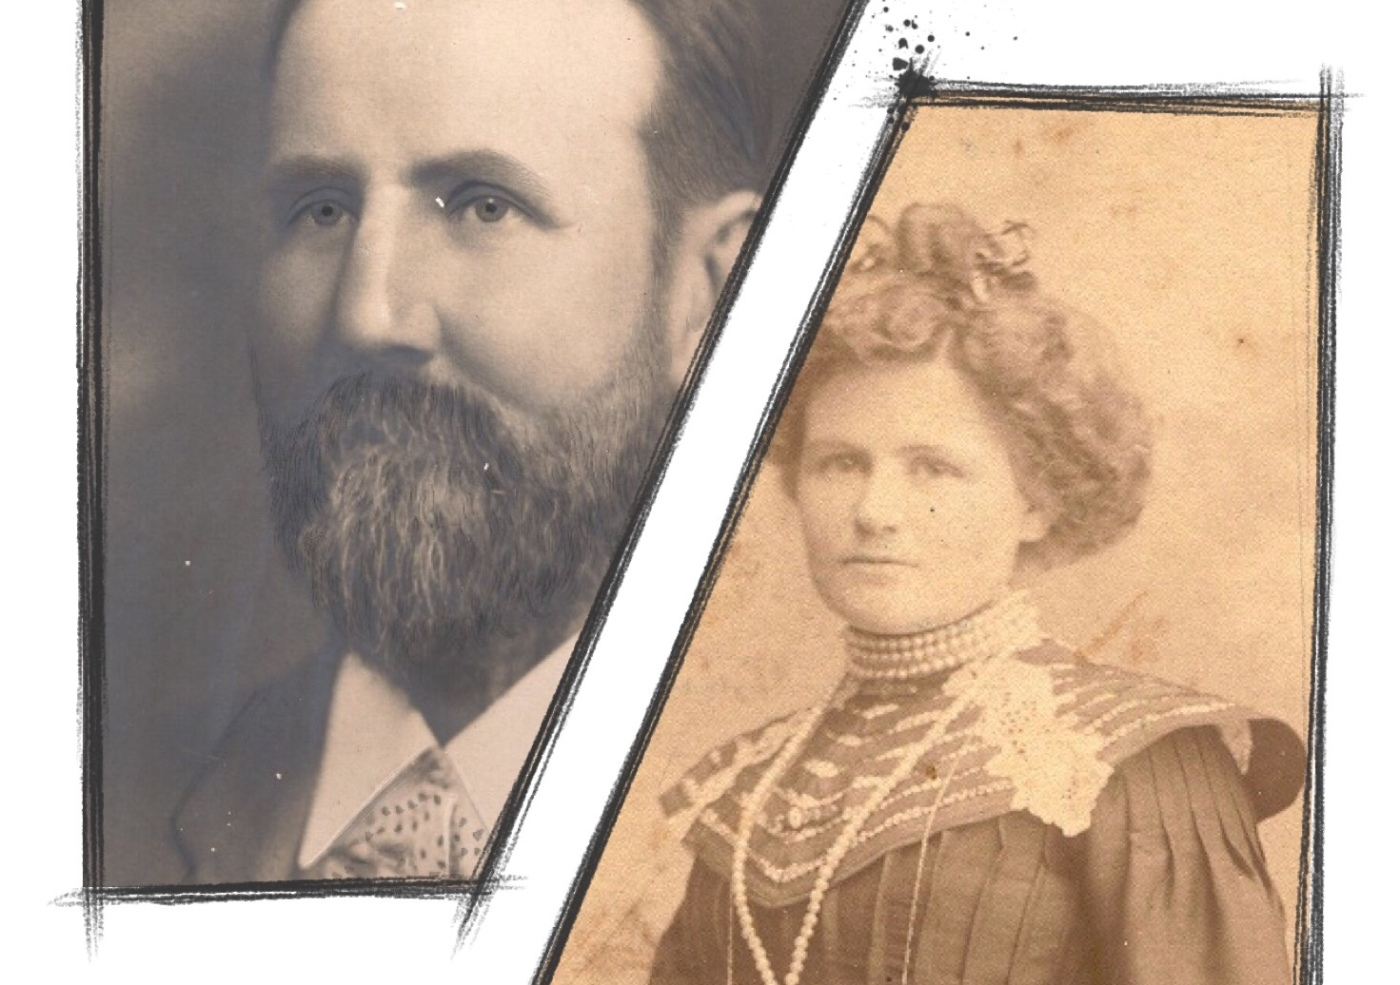 Shaw & O'Donnell – an interfaith marriage that divides a